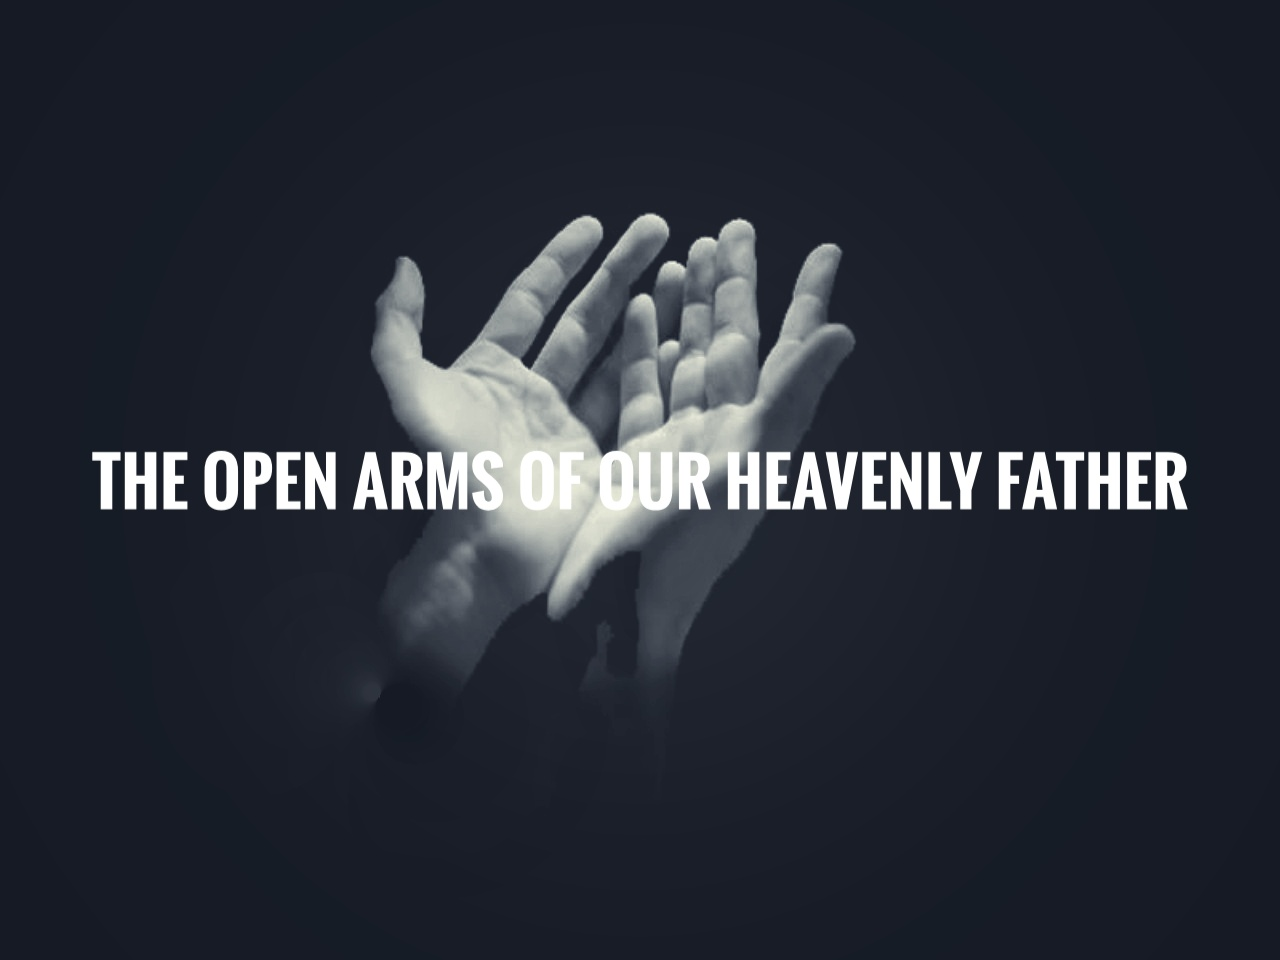 the open arms of our heavenly father 06.16.19.jpeg